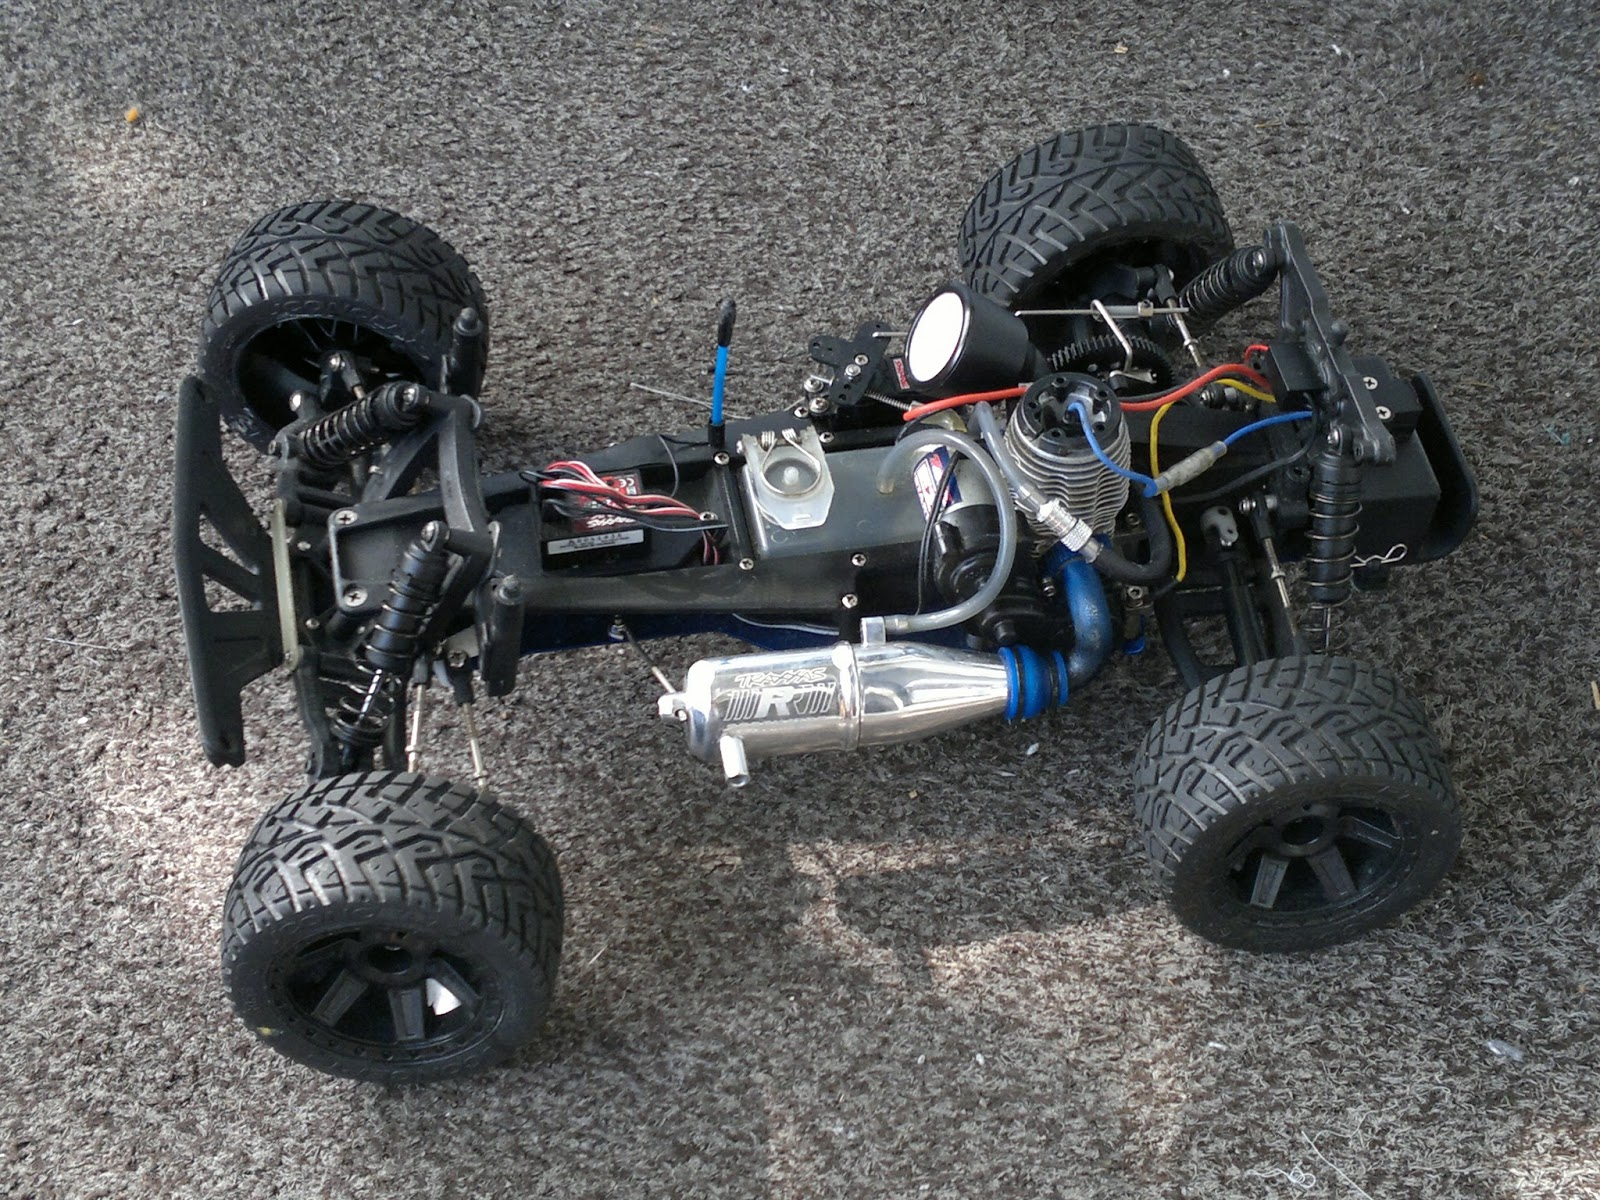 traxxas stampede videos with Mobilemediascoop Blogspot on Traxxas Finned Aluminum 116 Vxl Heatsink additionally 190467709852 further Showthread as well 419890365227850111 besides Mon Tech M10 Clear Pan Car Body.